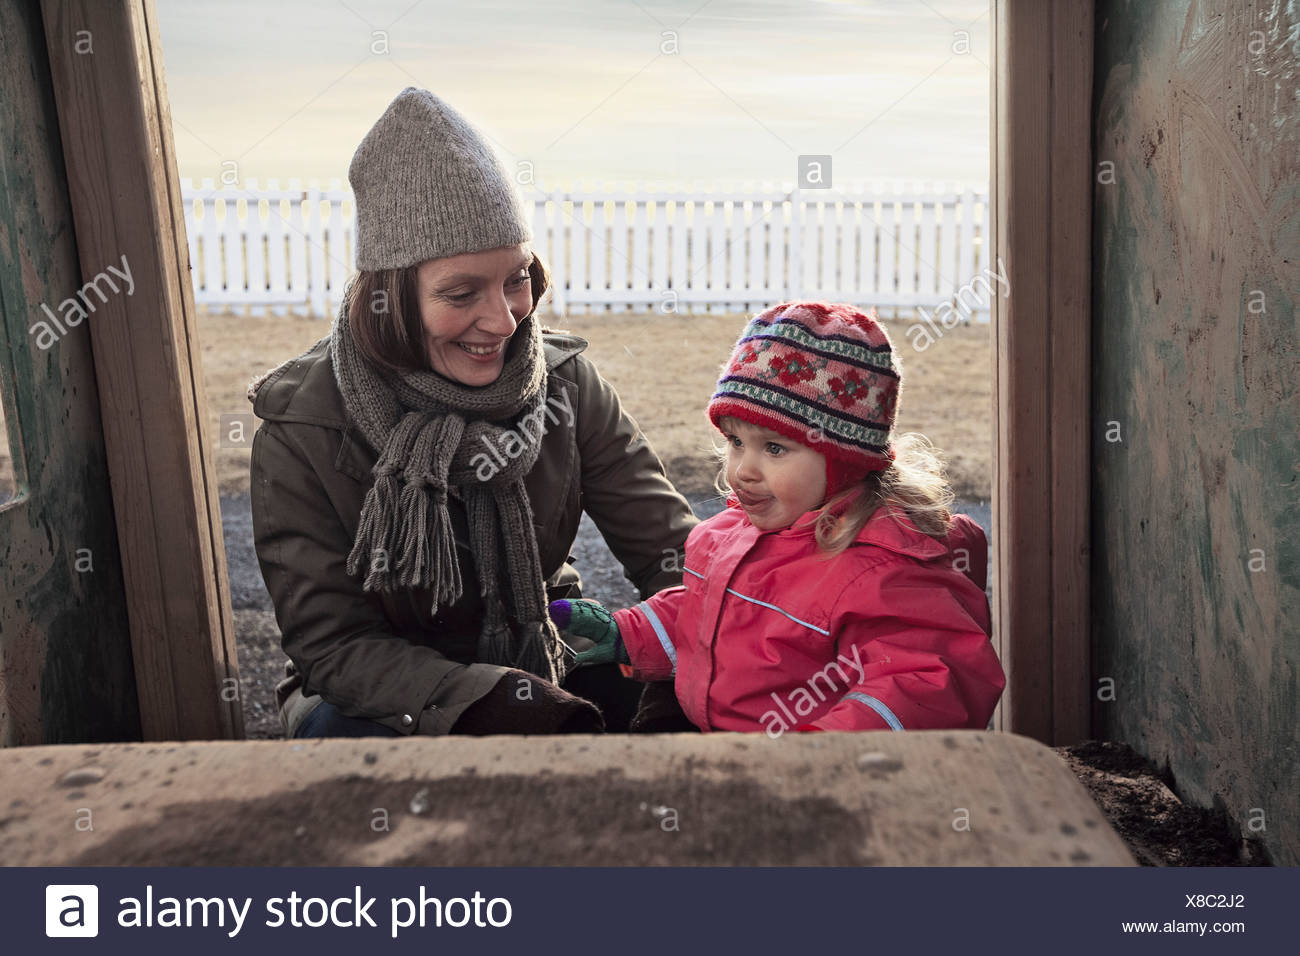 Mother and daughter playing outdoors Stock Photo